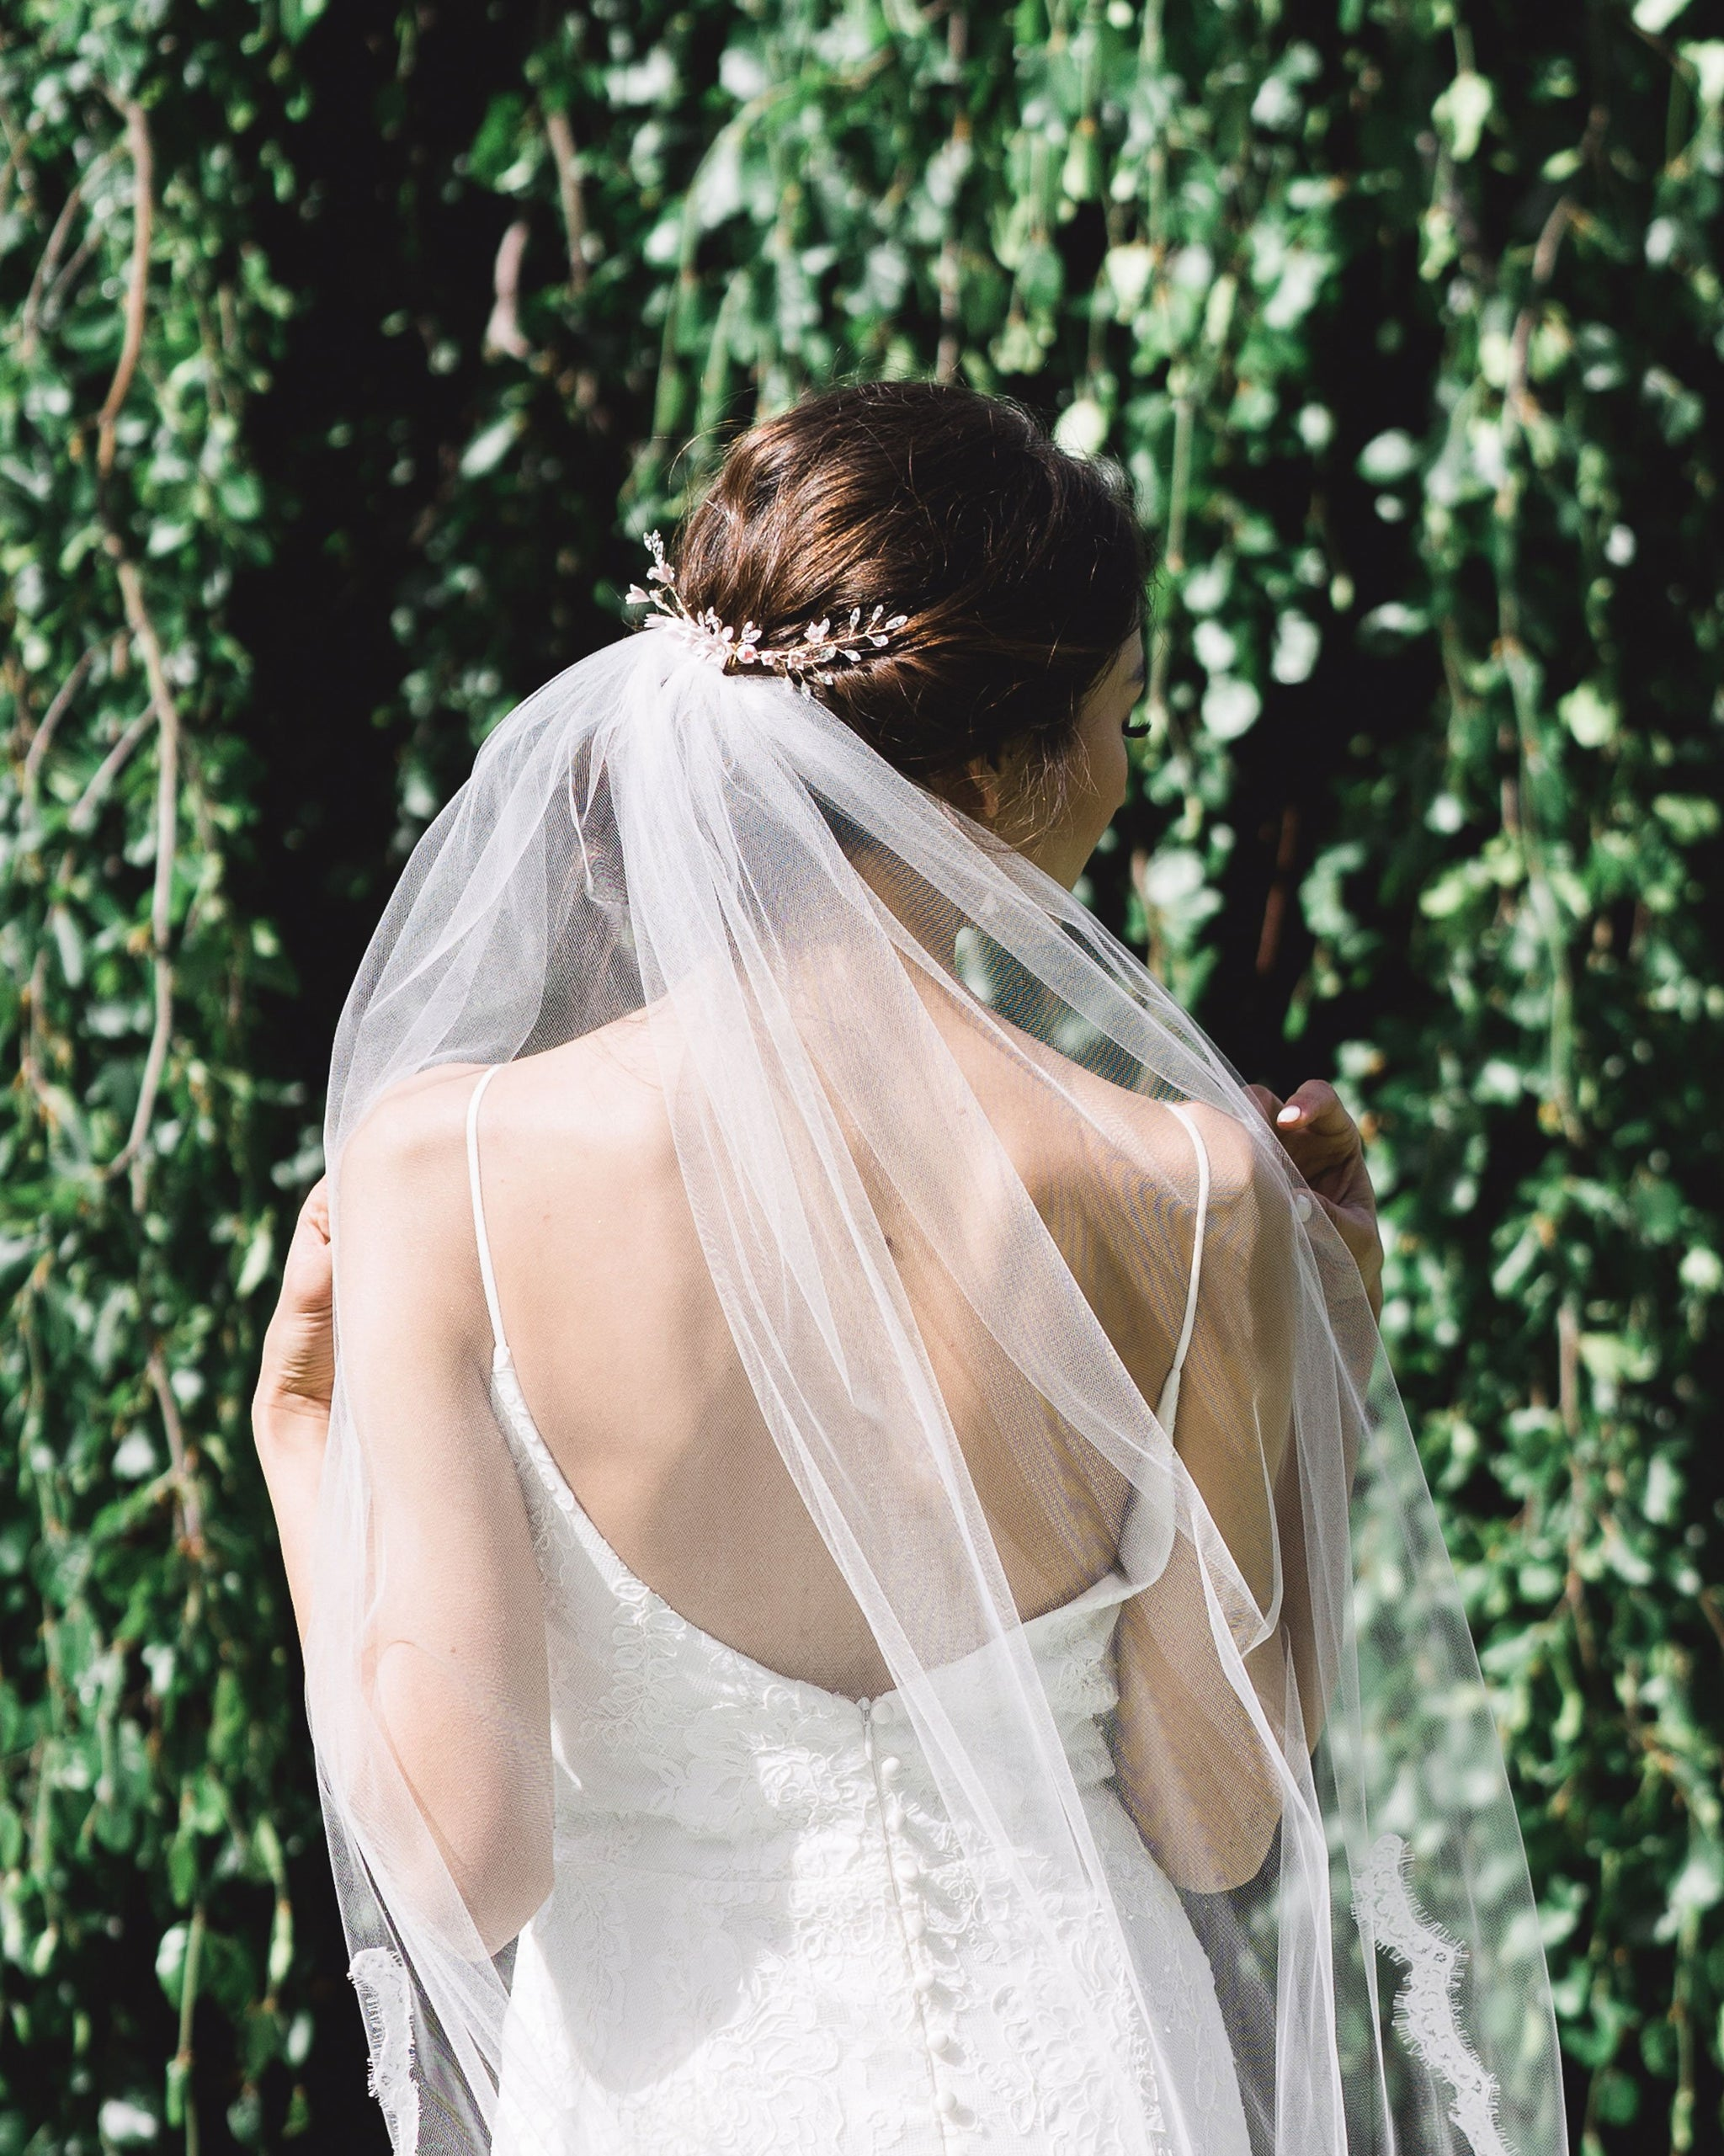 Belle Fleur Grand Bridal Comb by Atelier Elise styled with a low updo above a tulle veil